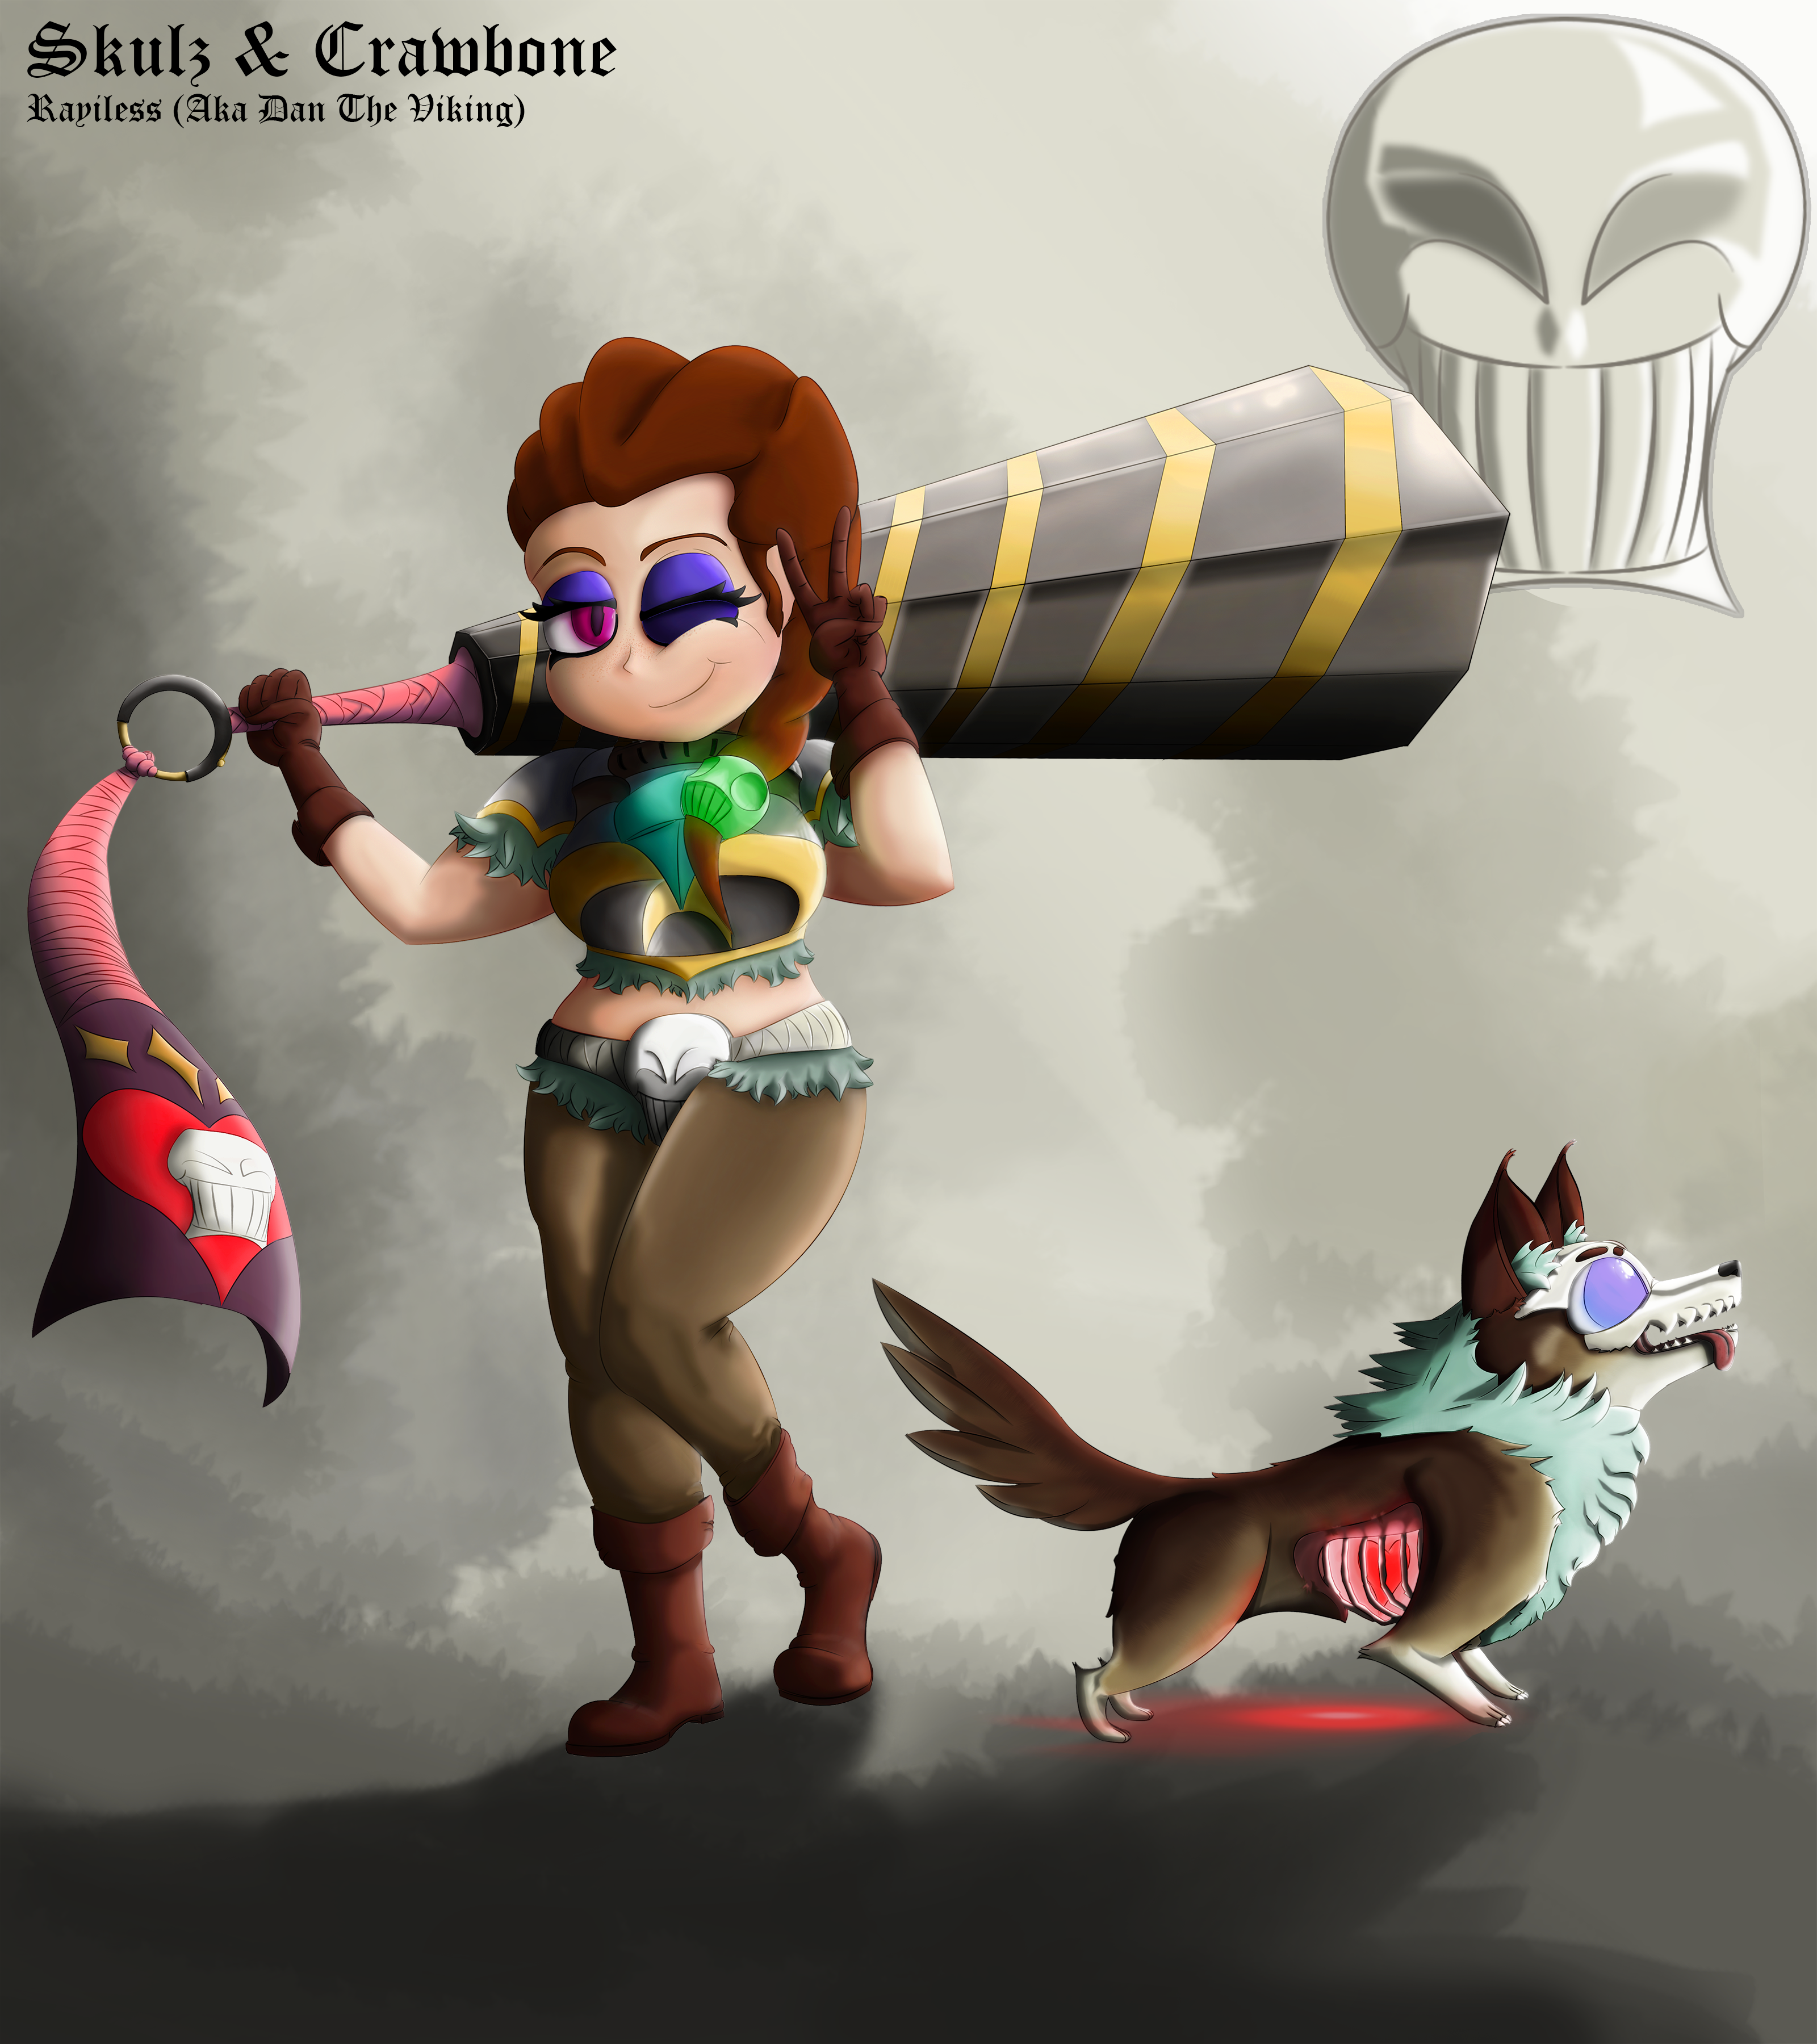 Meet: Skulz the Barbarian and Crawbone the Zombie Pup!